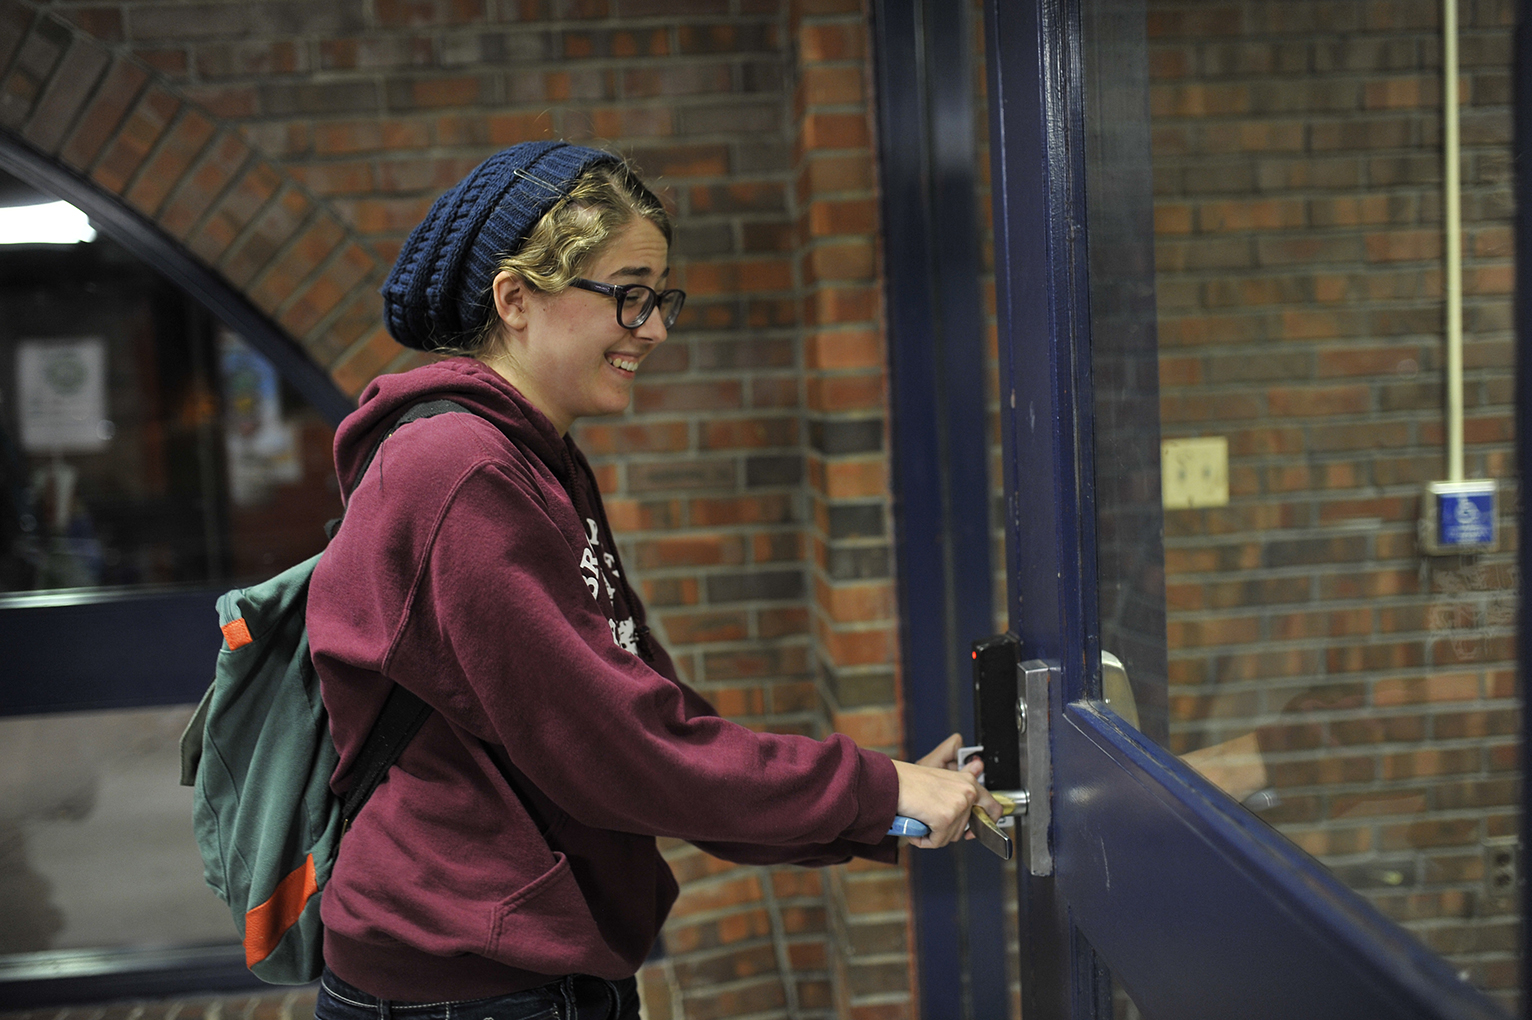 An investigation by  The  Daily Campus found that students were able to swipe into residence halls from spring 2015.(Jason Jiang/Daily Campus)